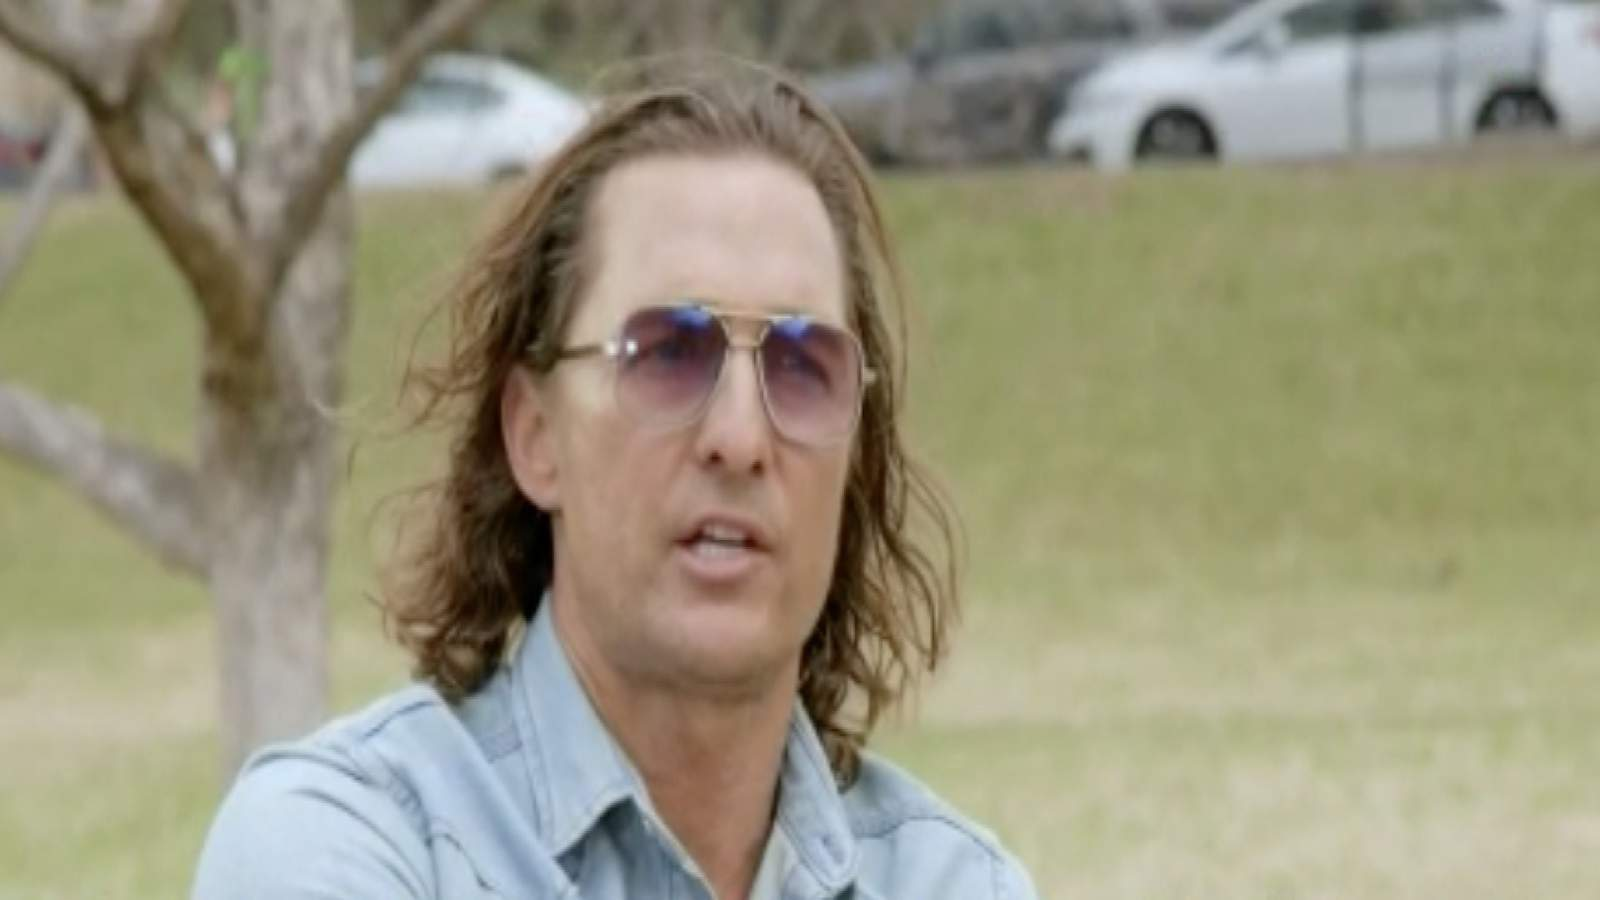 Matthew McConaughey calls on stars like George Strait, Willie Nelson for virtual concert benefiting Texas storm victims - KPRC Click2Houston